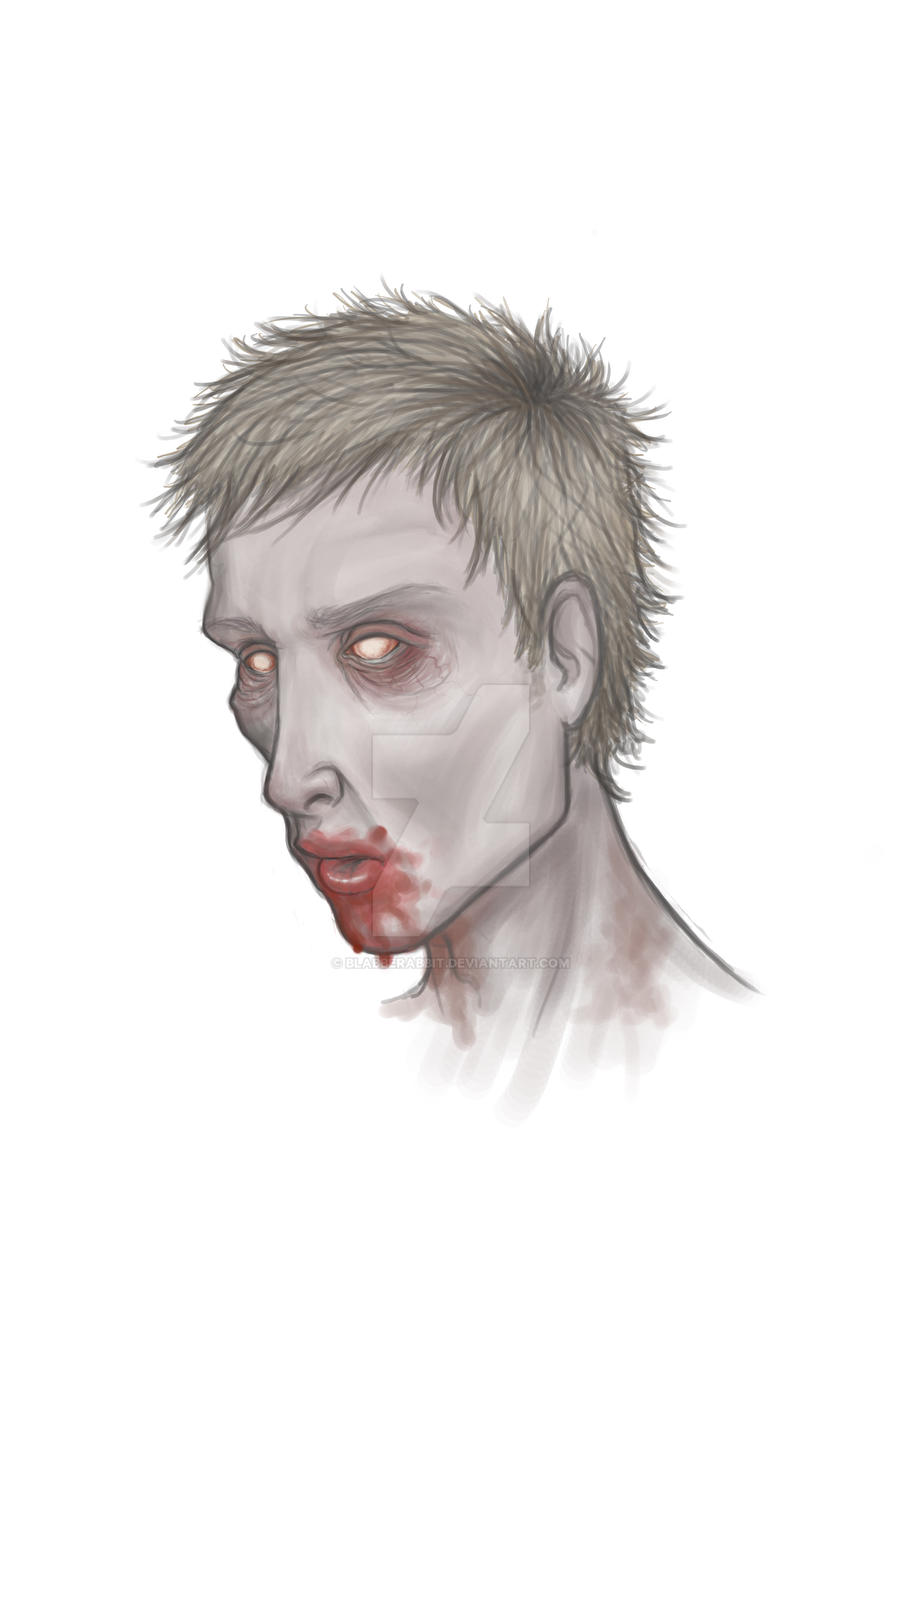 Xenith the Zombie by blabberabbit